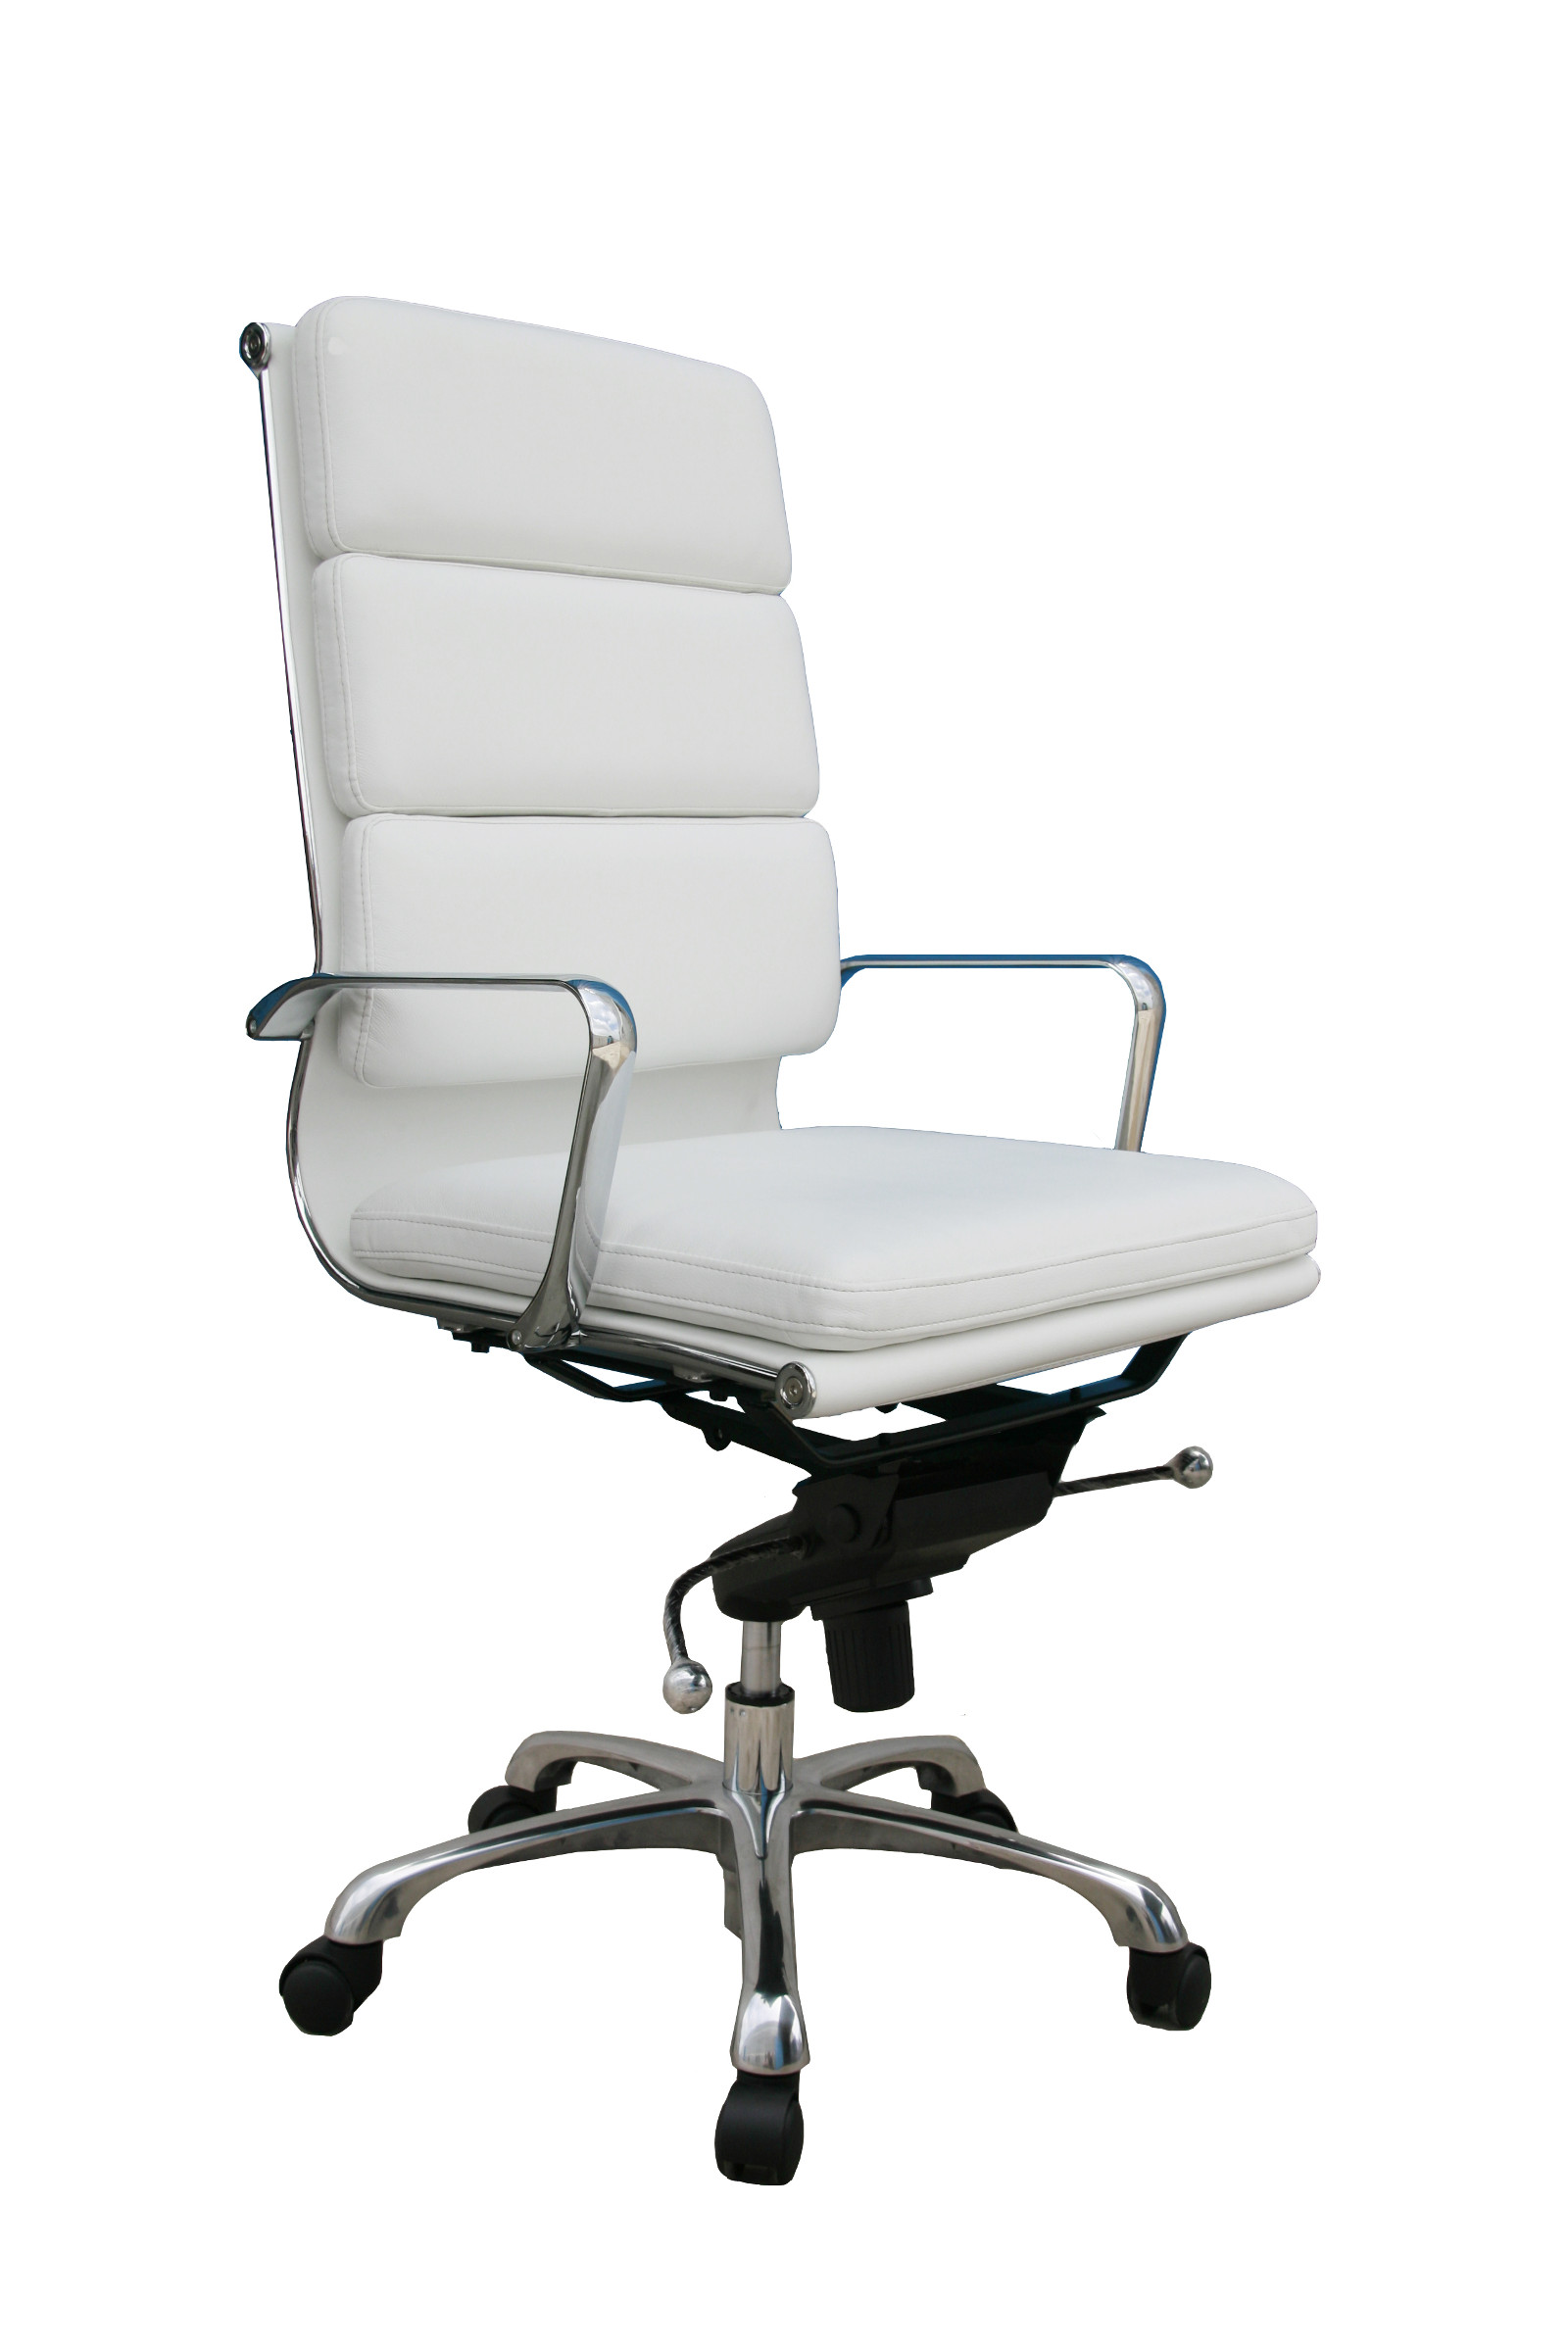 Plush Office Chair J Andm Plush White High Back Office Chair 176472